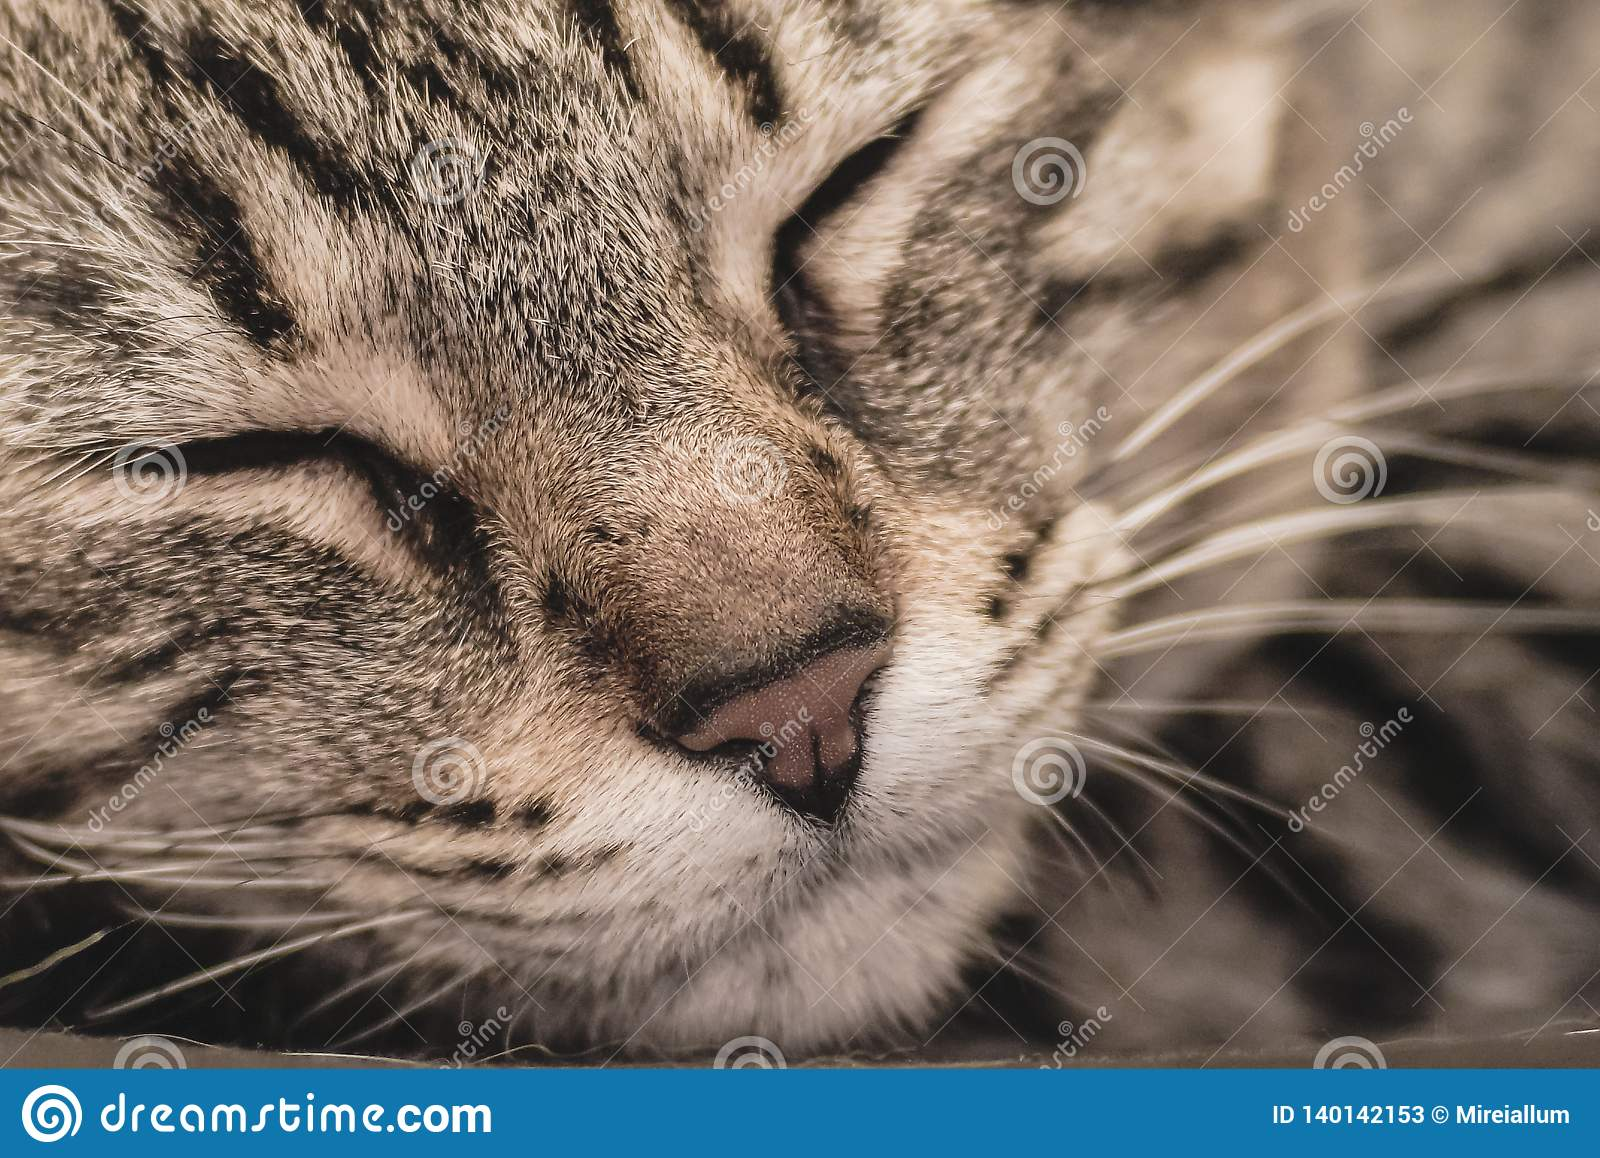 A close up of a a cat sleeping quietly and peacefully.